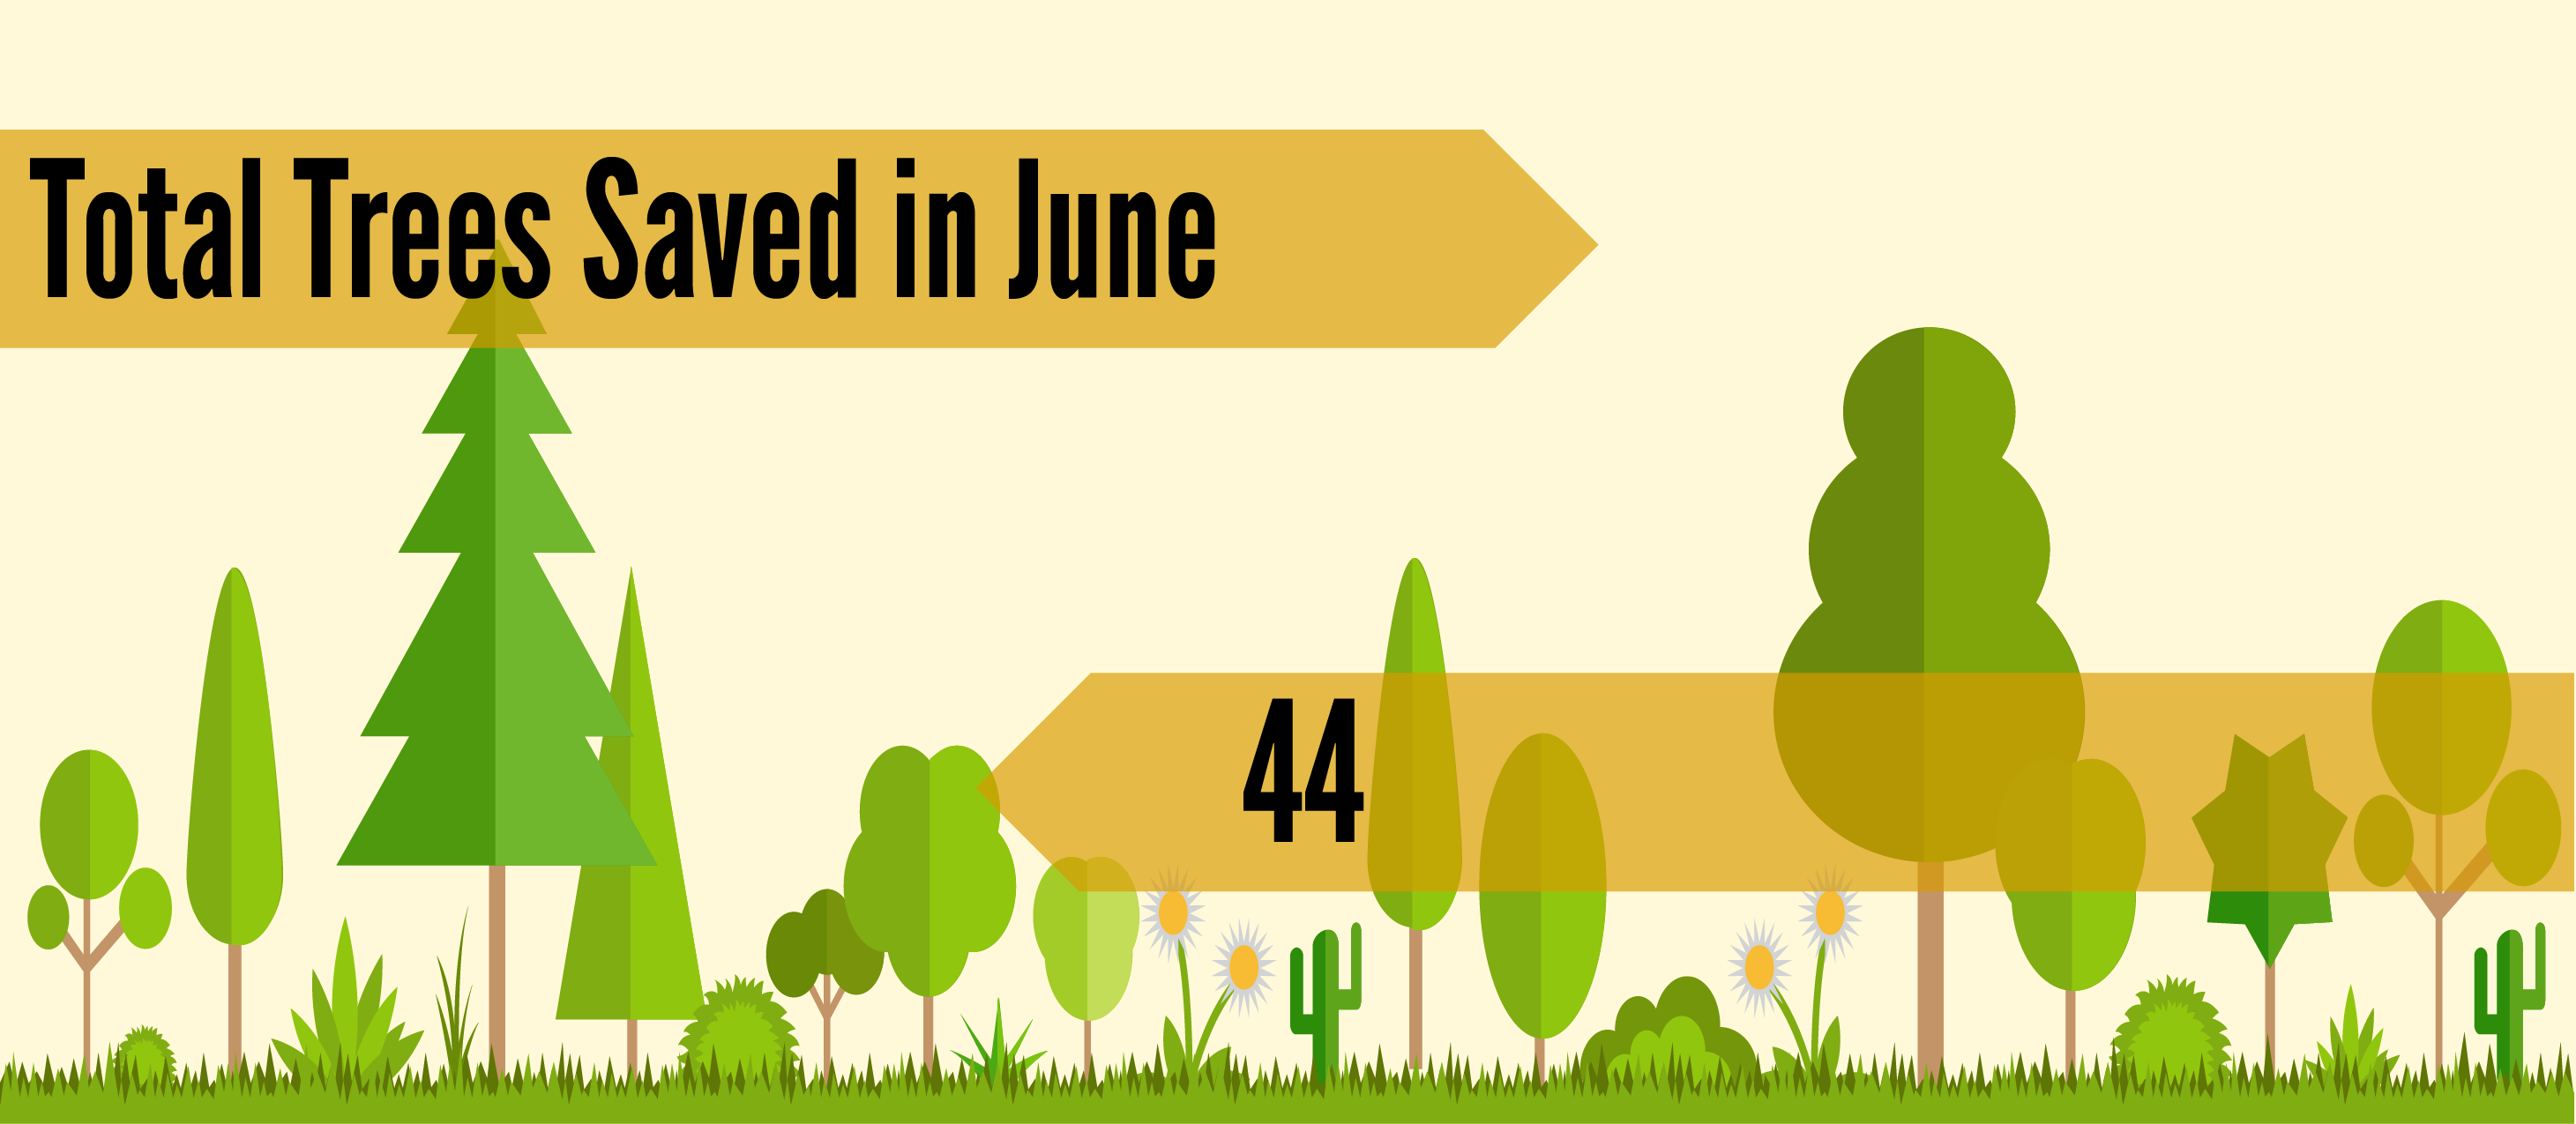 Tree Saved June